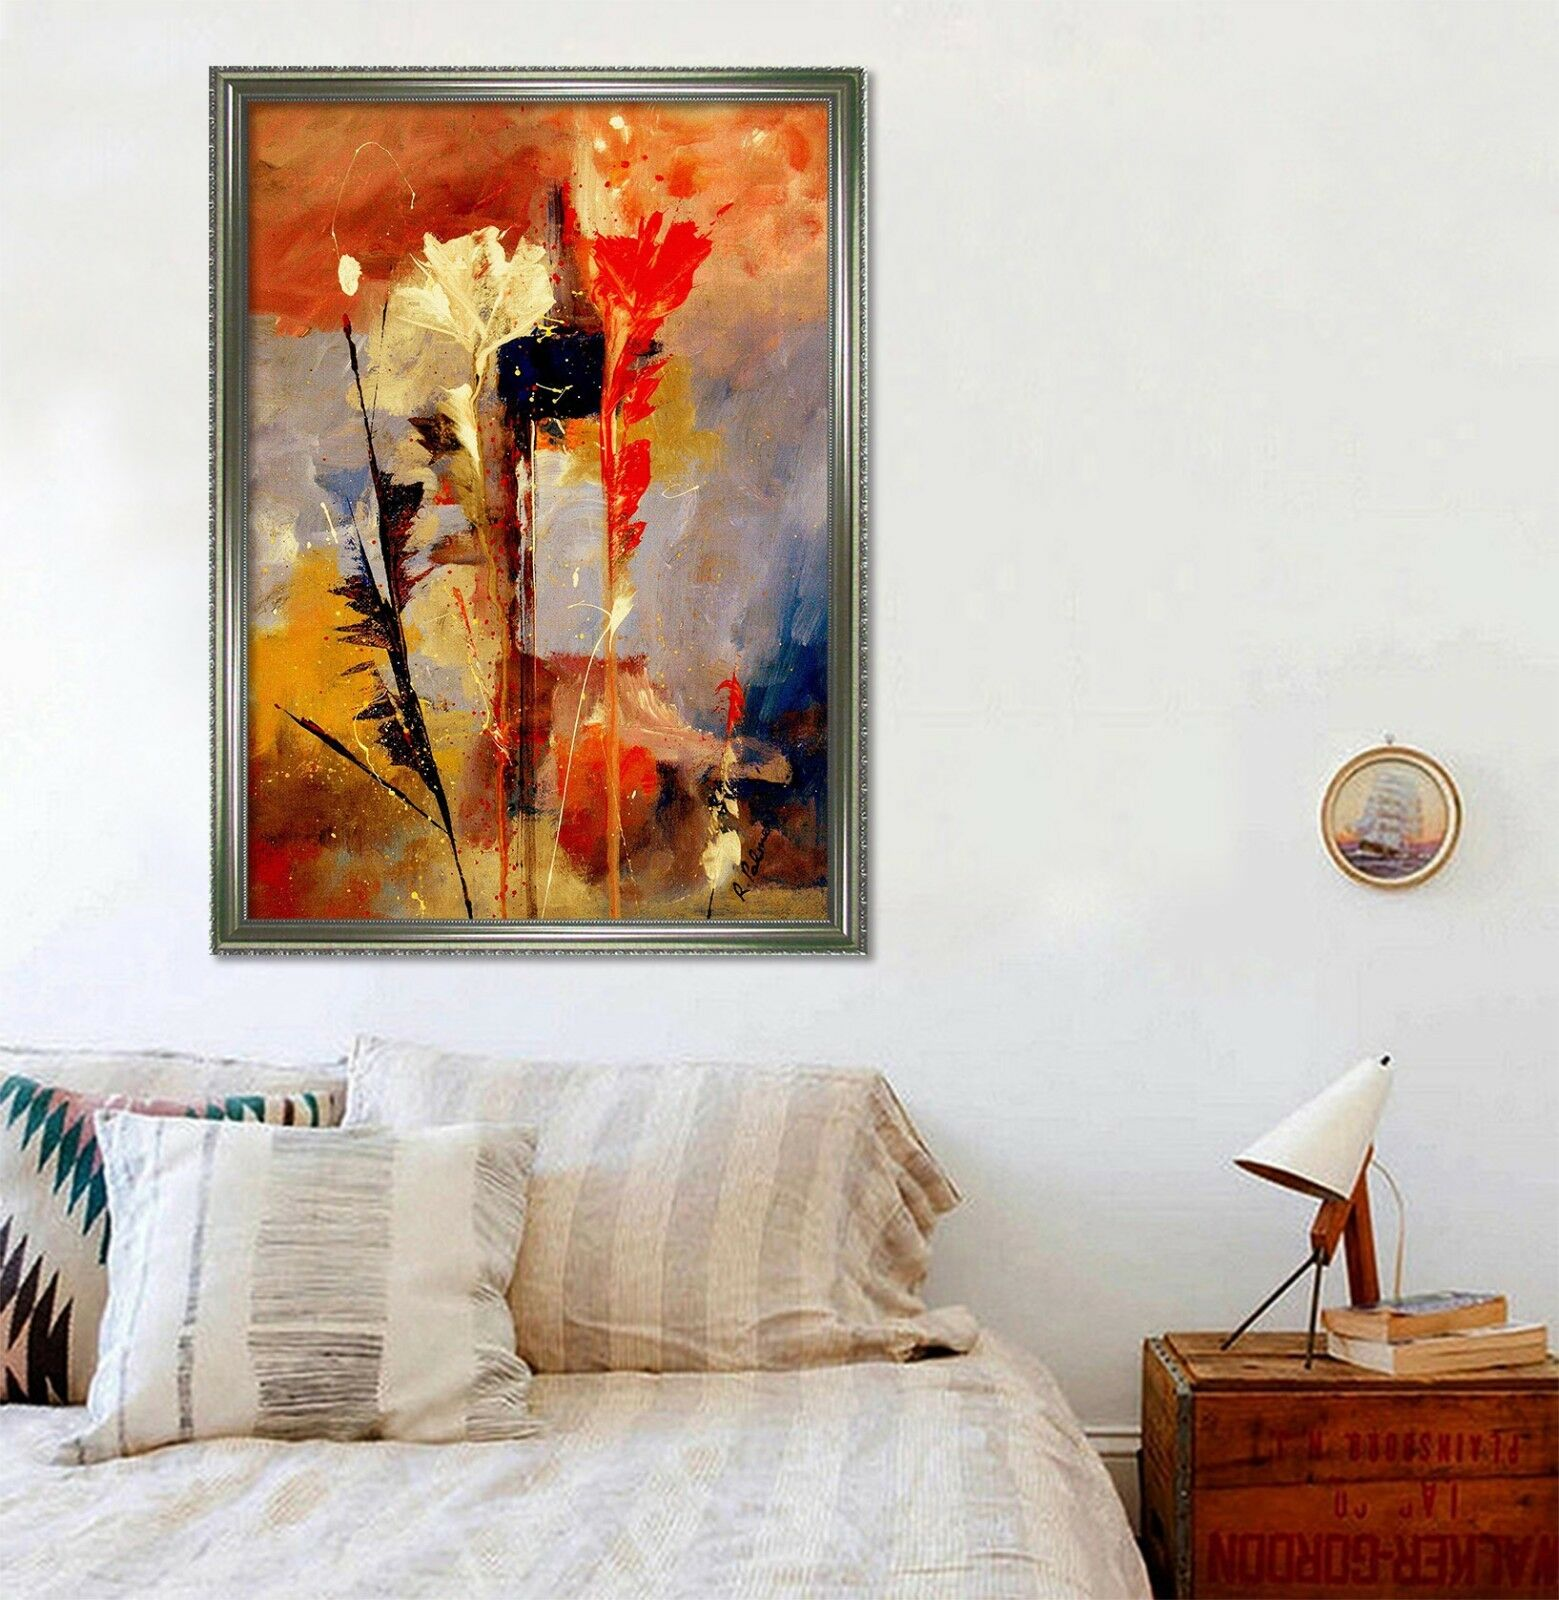 3D Painted Art 5663 Fake Framed Poster Home Decor Print Painting Unique Art